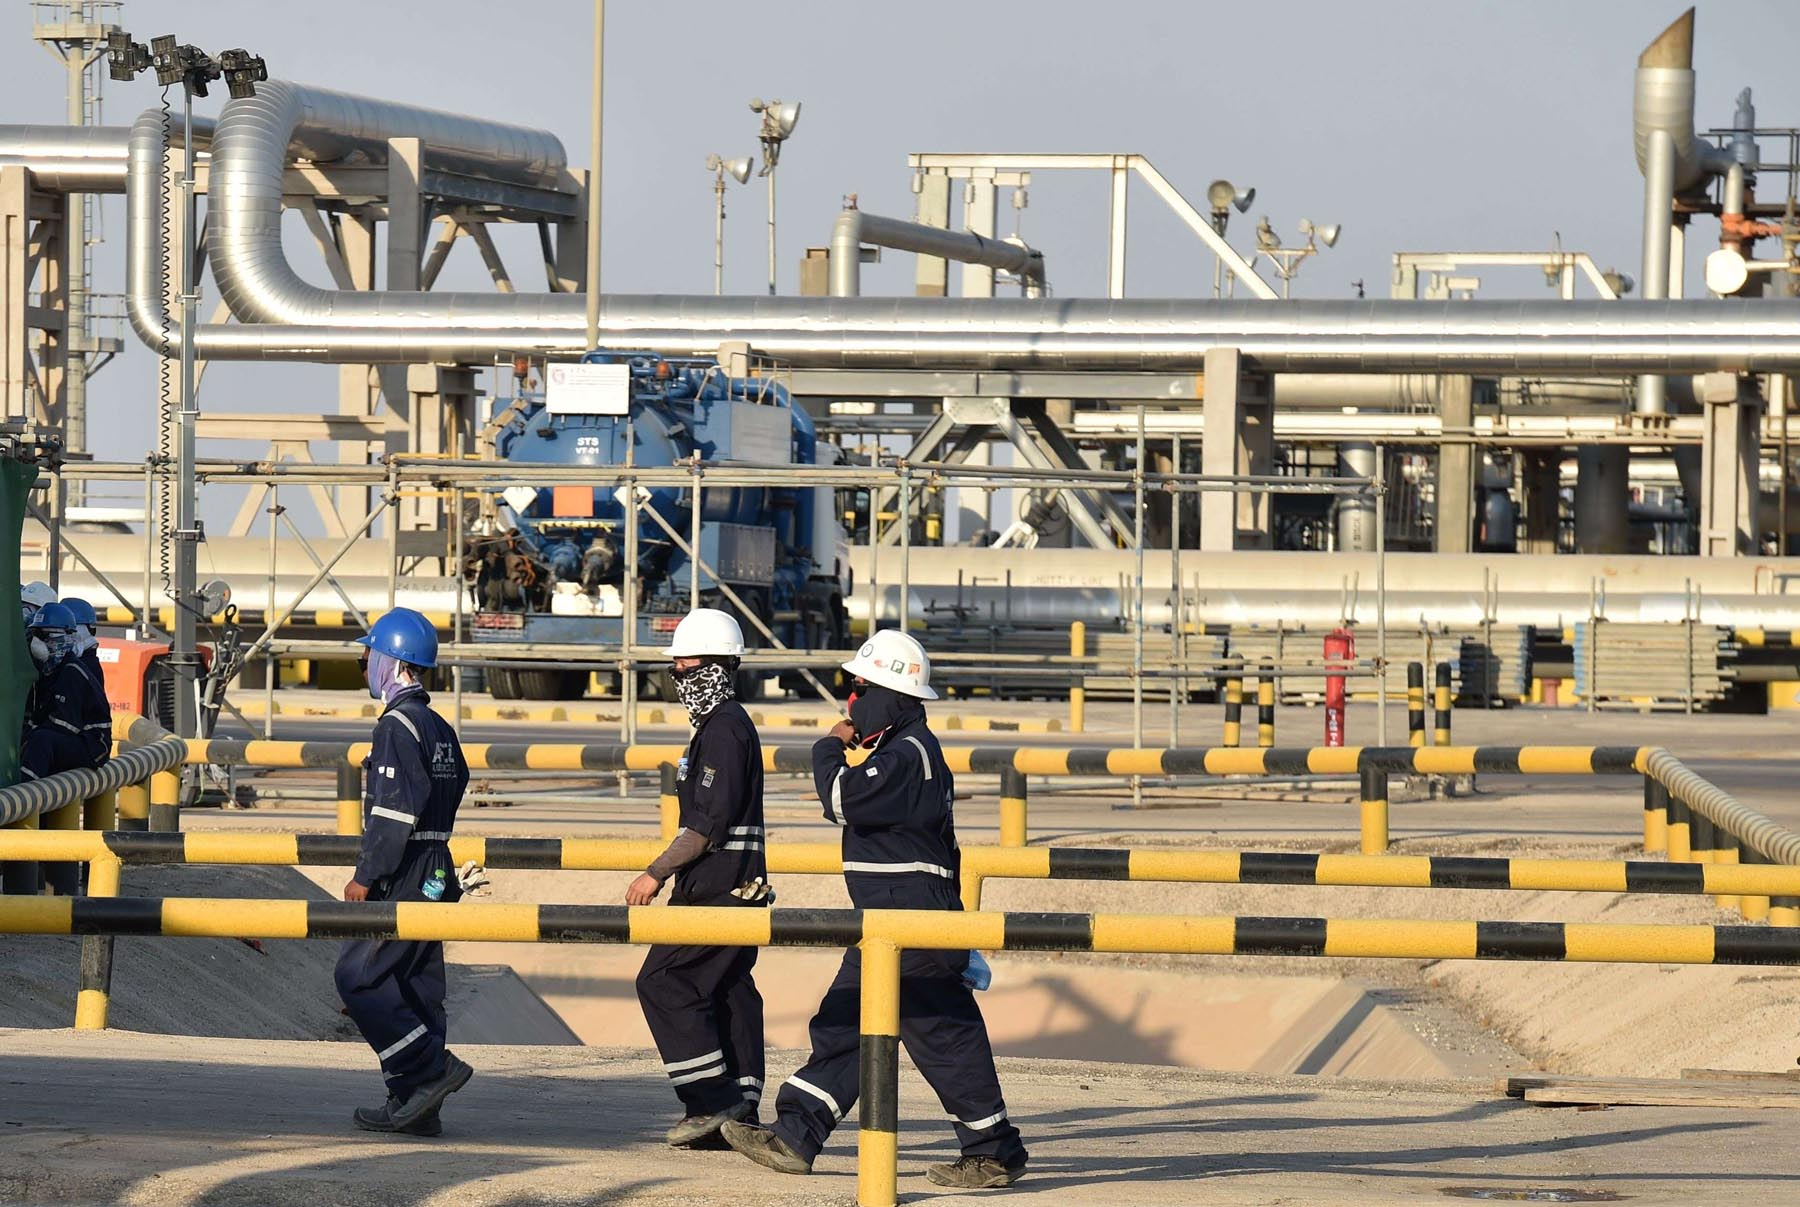 Employees of Aramco oil company at Saudi Arabia's Abqaiq oil processing plant. (AFP)